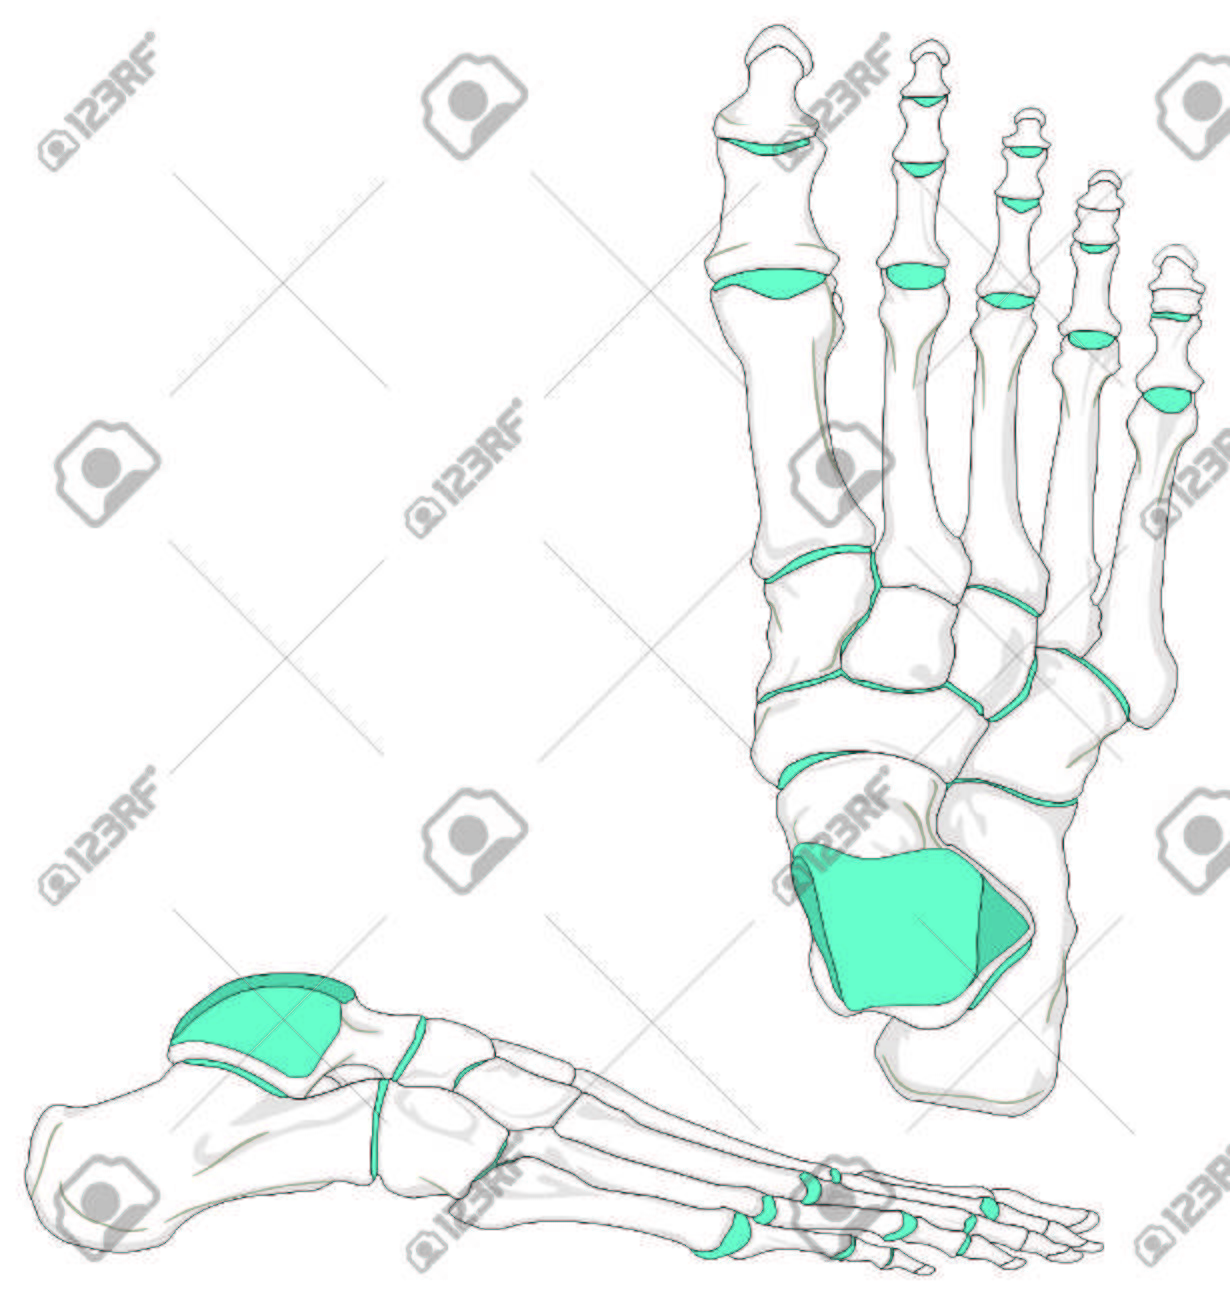 Human Foot Bones Anatomy Diagram In Anatomical Position Royalty Free ...